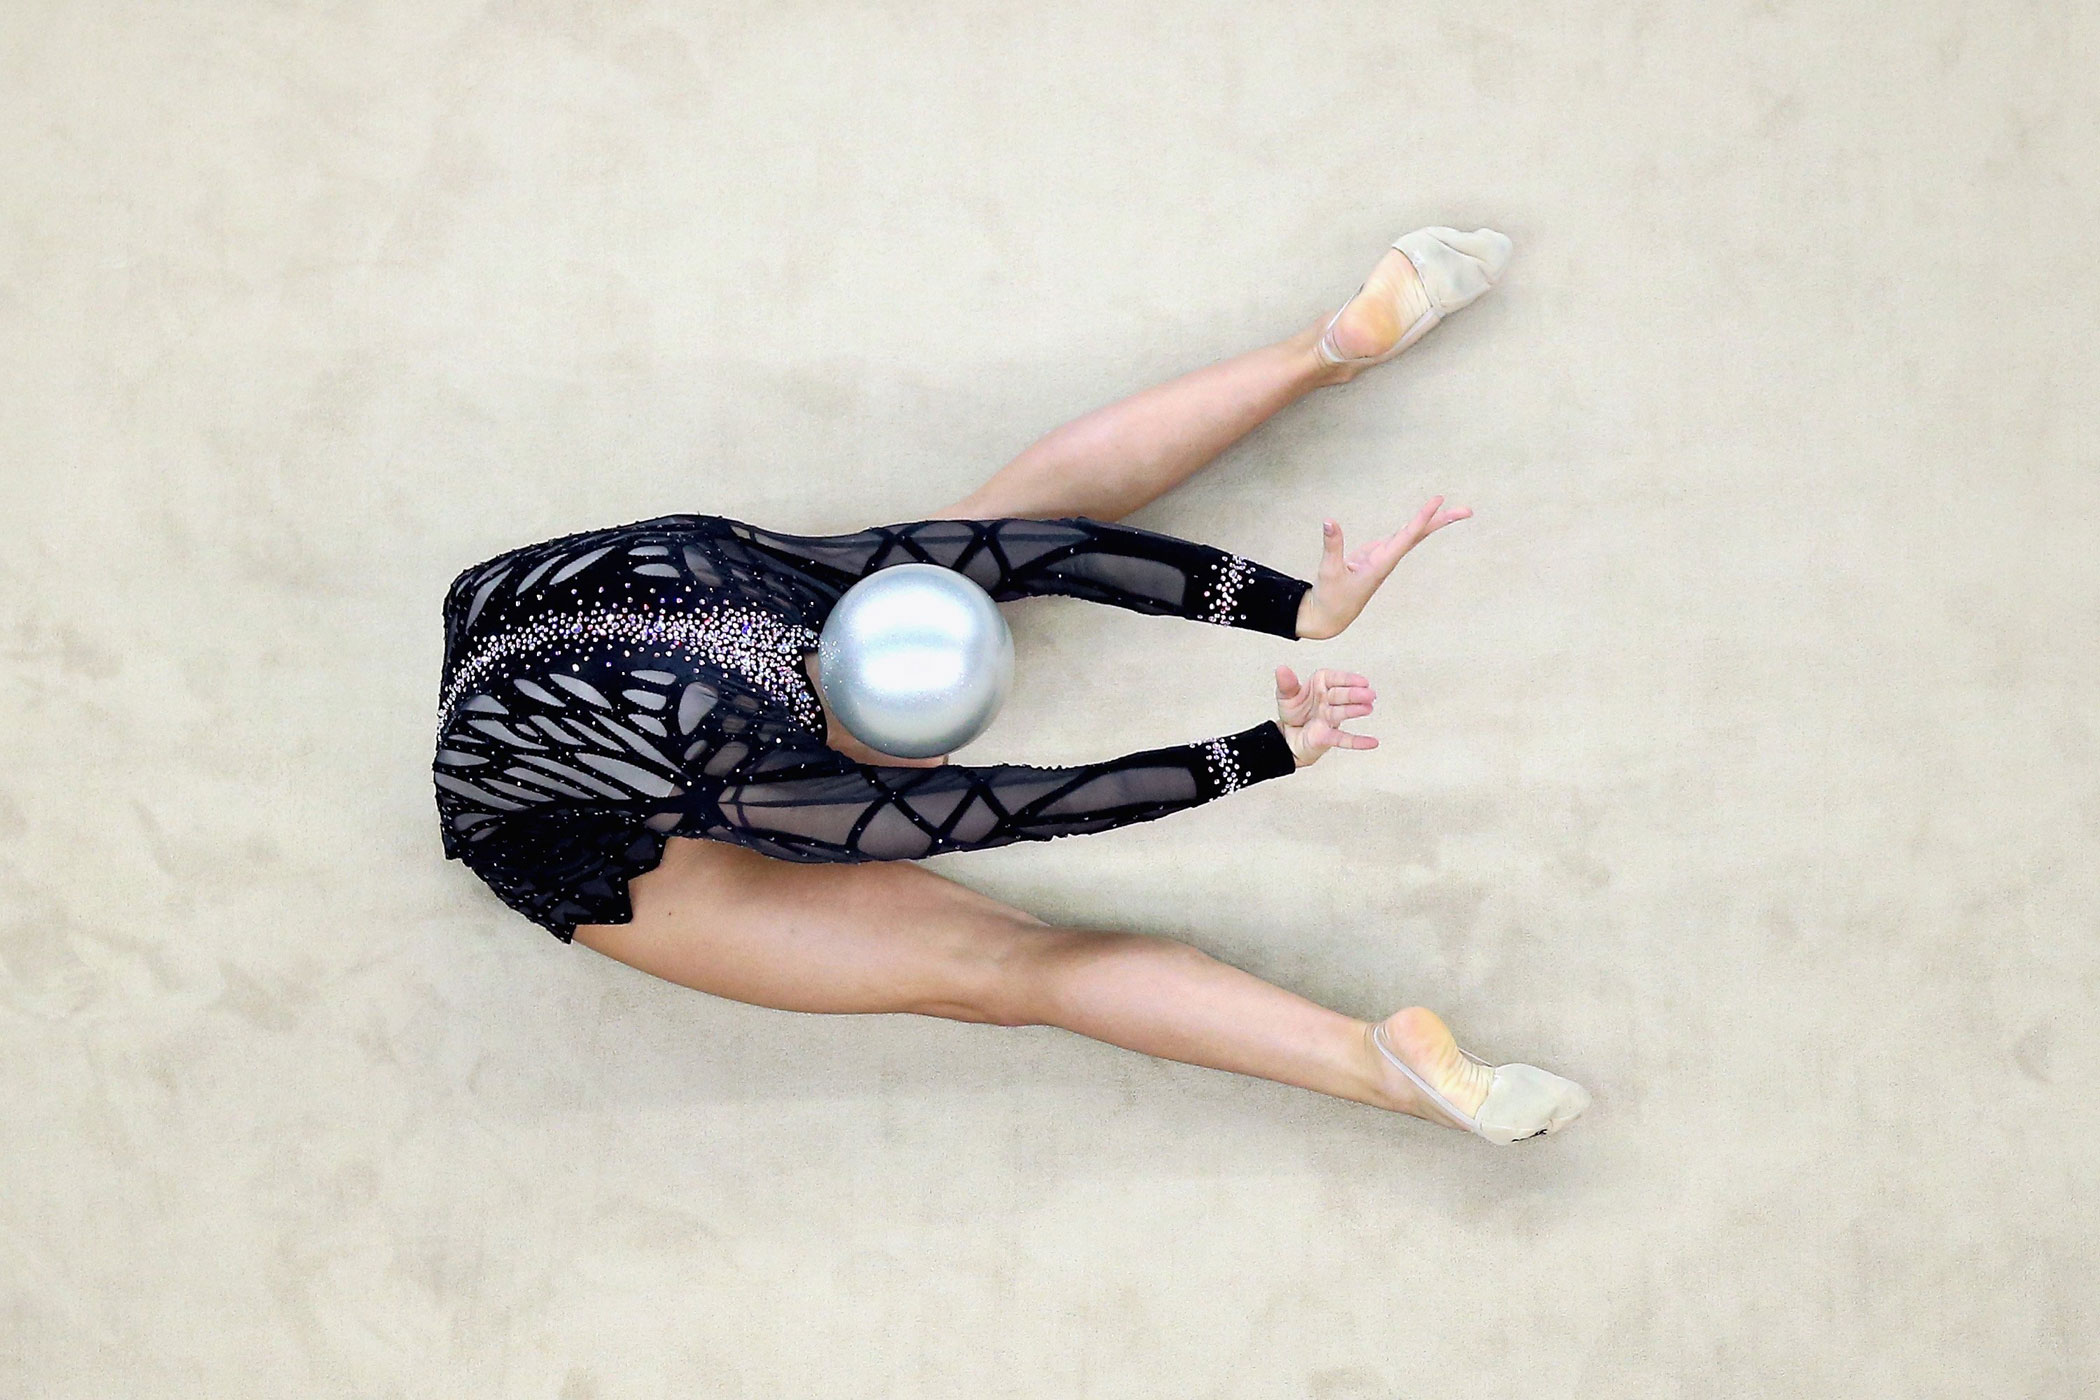 Shannon Gardiner of South Africa competes in Rhythmic Gymnastics Individual All-Around Qualification on day ten of the Nanjing 2014 Summer Youth Olympic Games at Nanjing OSC Gymnasium on Aug. 26, 2014 in Nanjing.